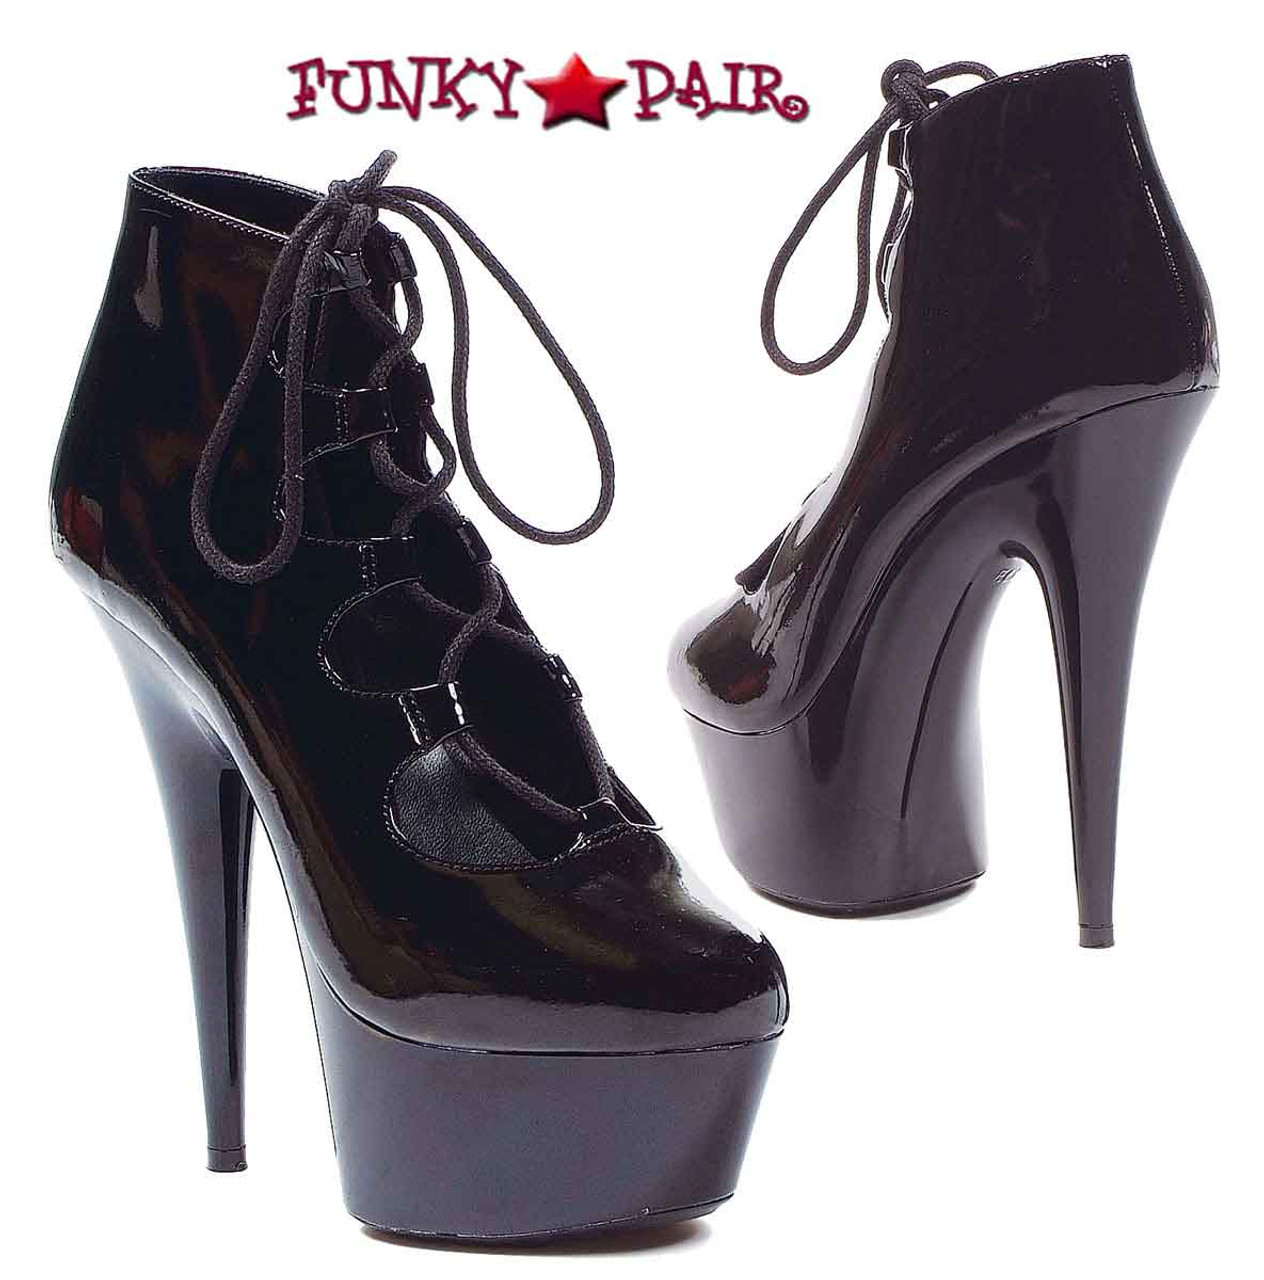 7e020a1d50 609-Edgy, 6 Inch High Heel with 1.75 Inch Platform Mary Jane Made by